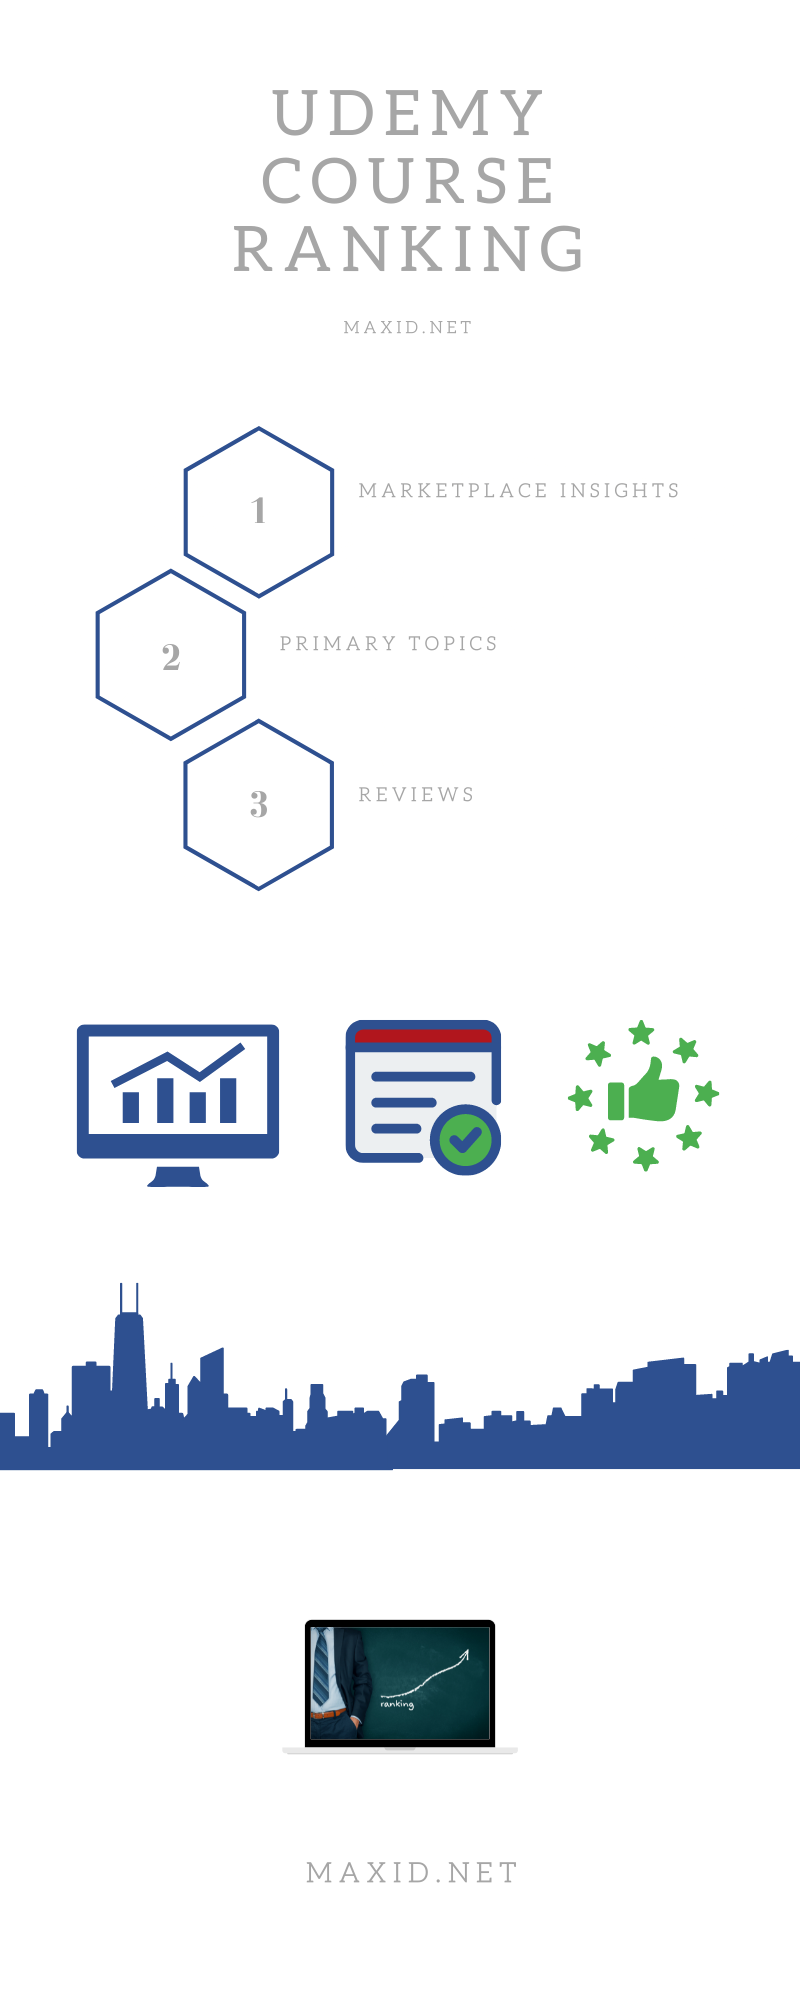 Udemy-Marketplace-Insights-Infographic